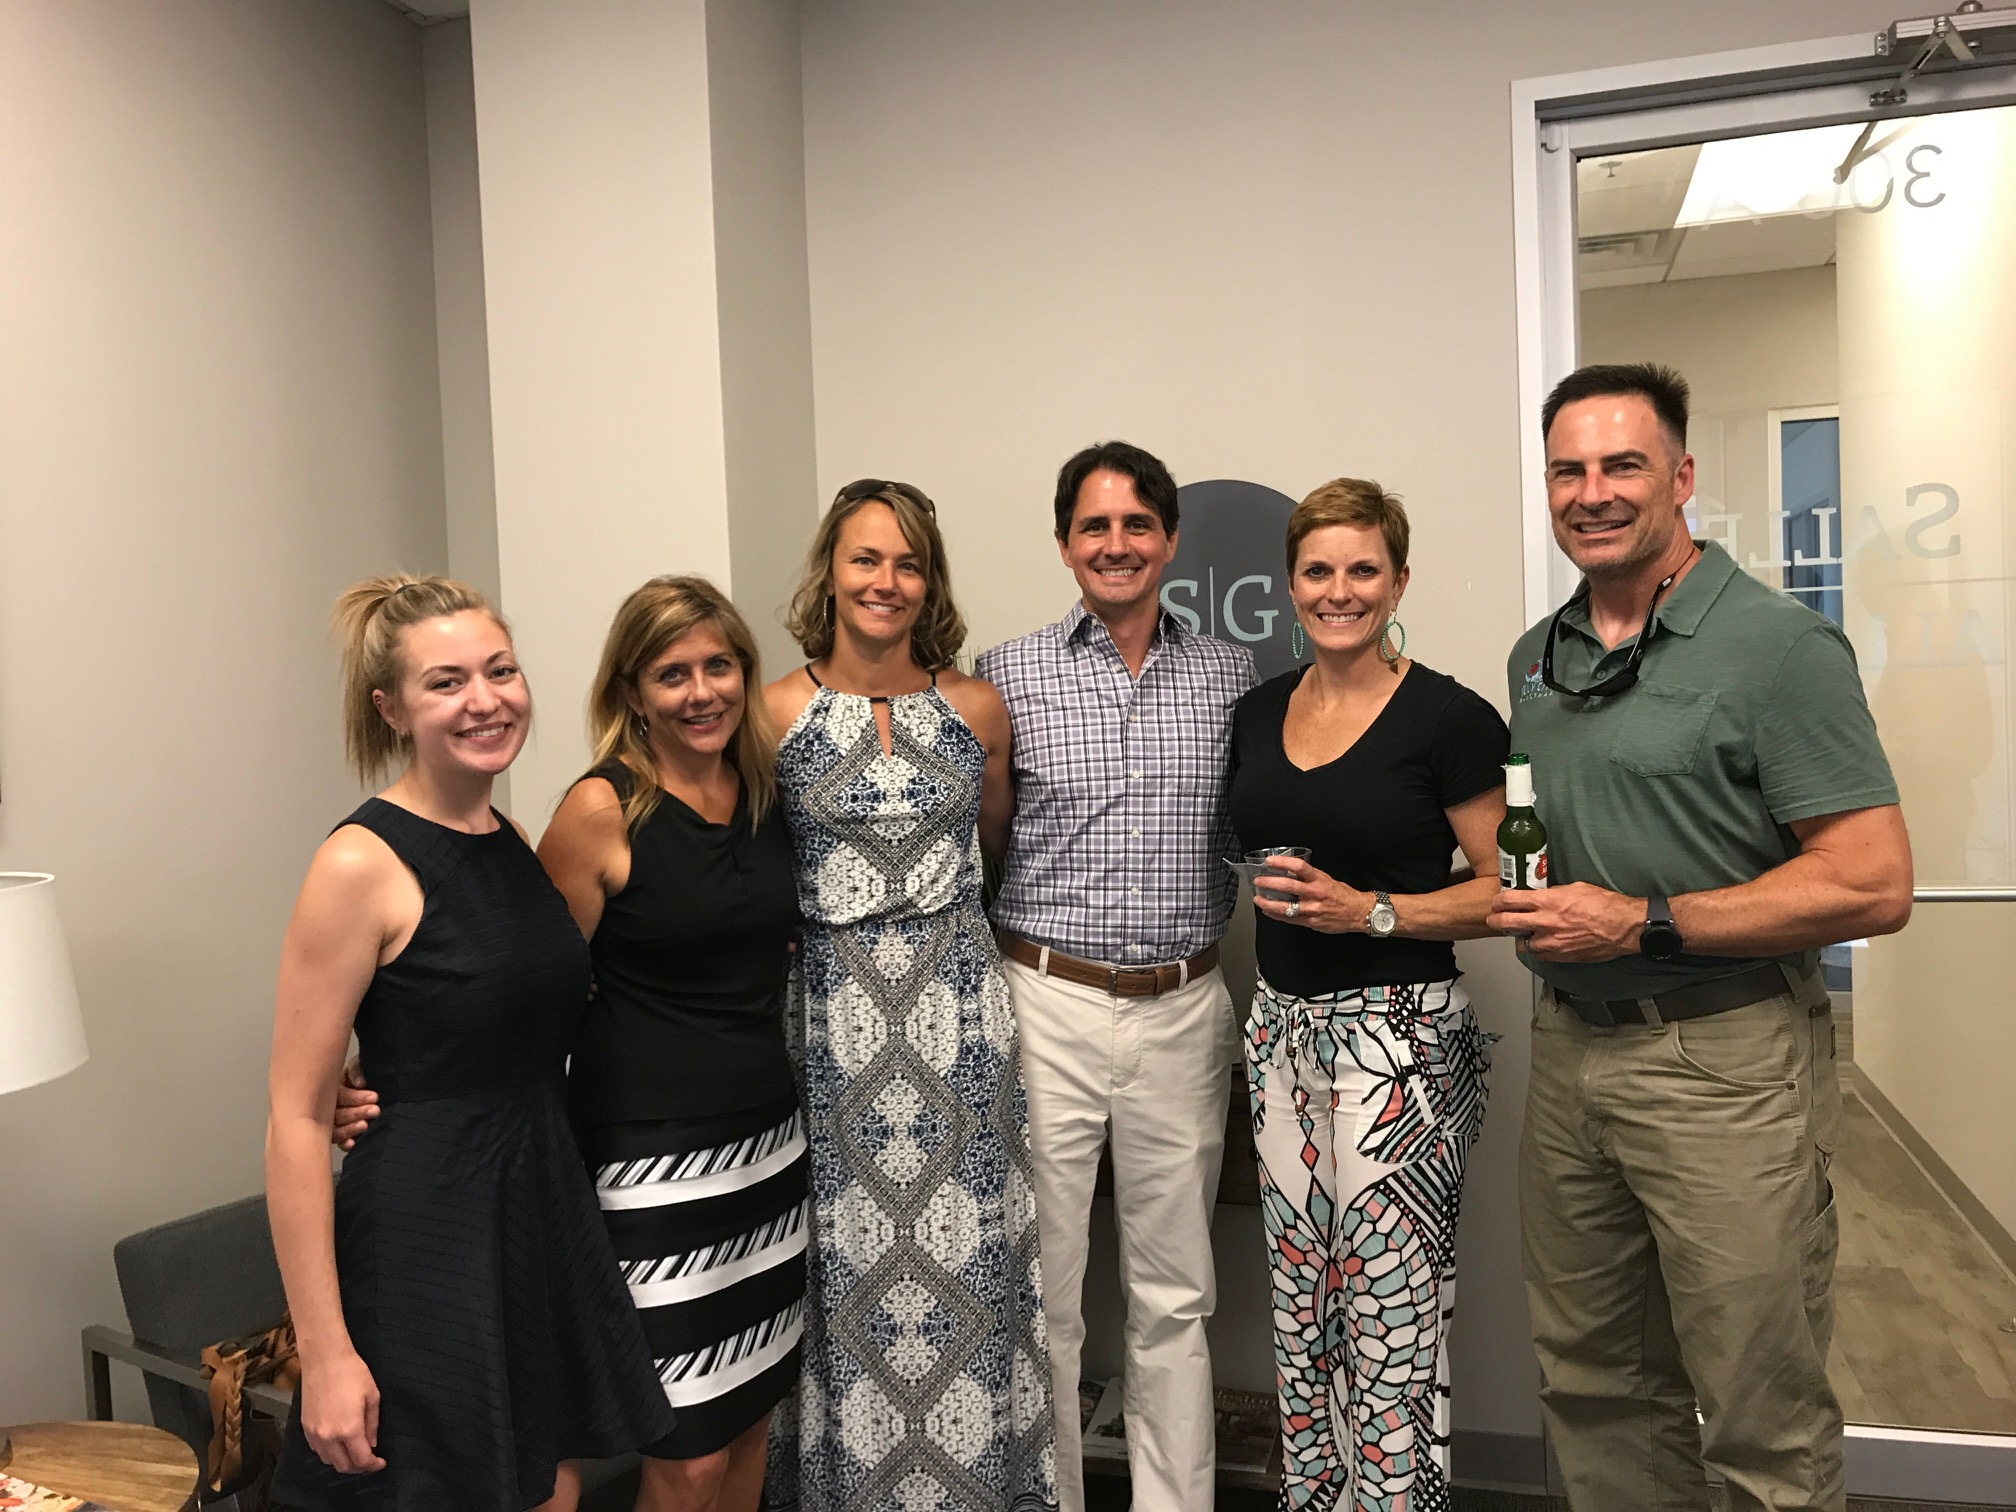 Emma Yocum, Beth Lee, April Galloway, Bret Galloway, Tracy Adams, Taylor Adams join in celebrating Salle Galloway's new Daniel Island office.